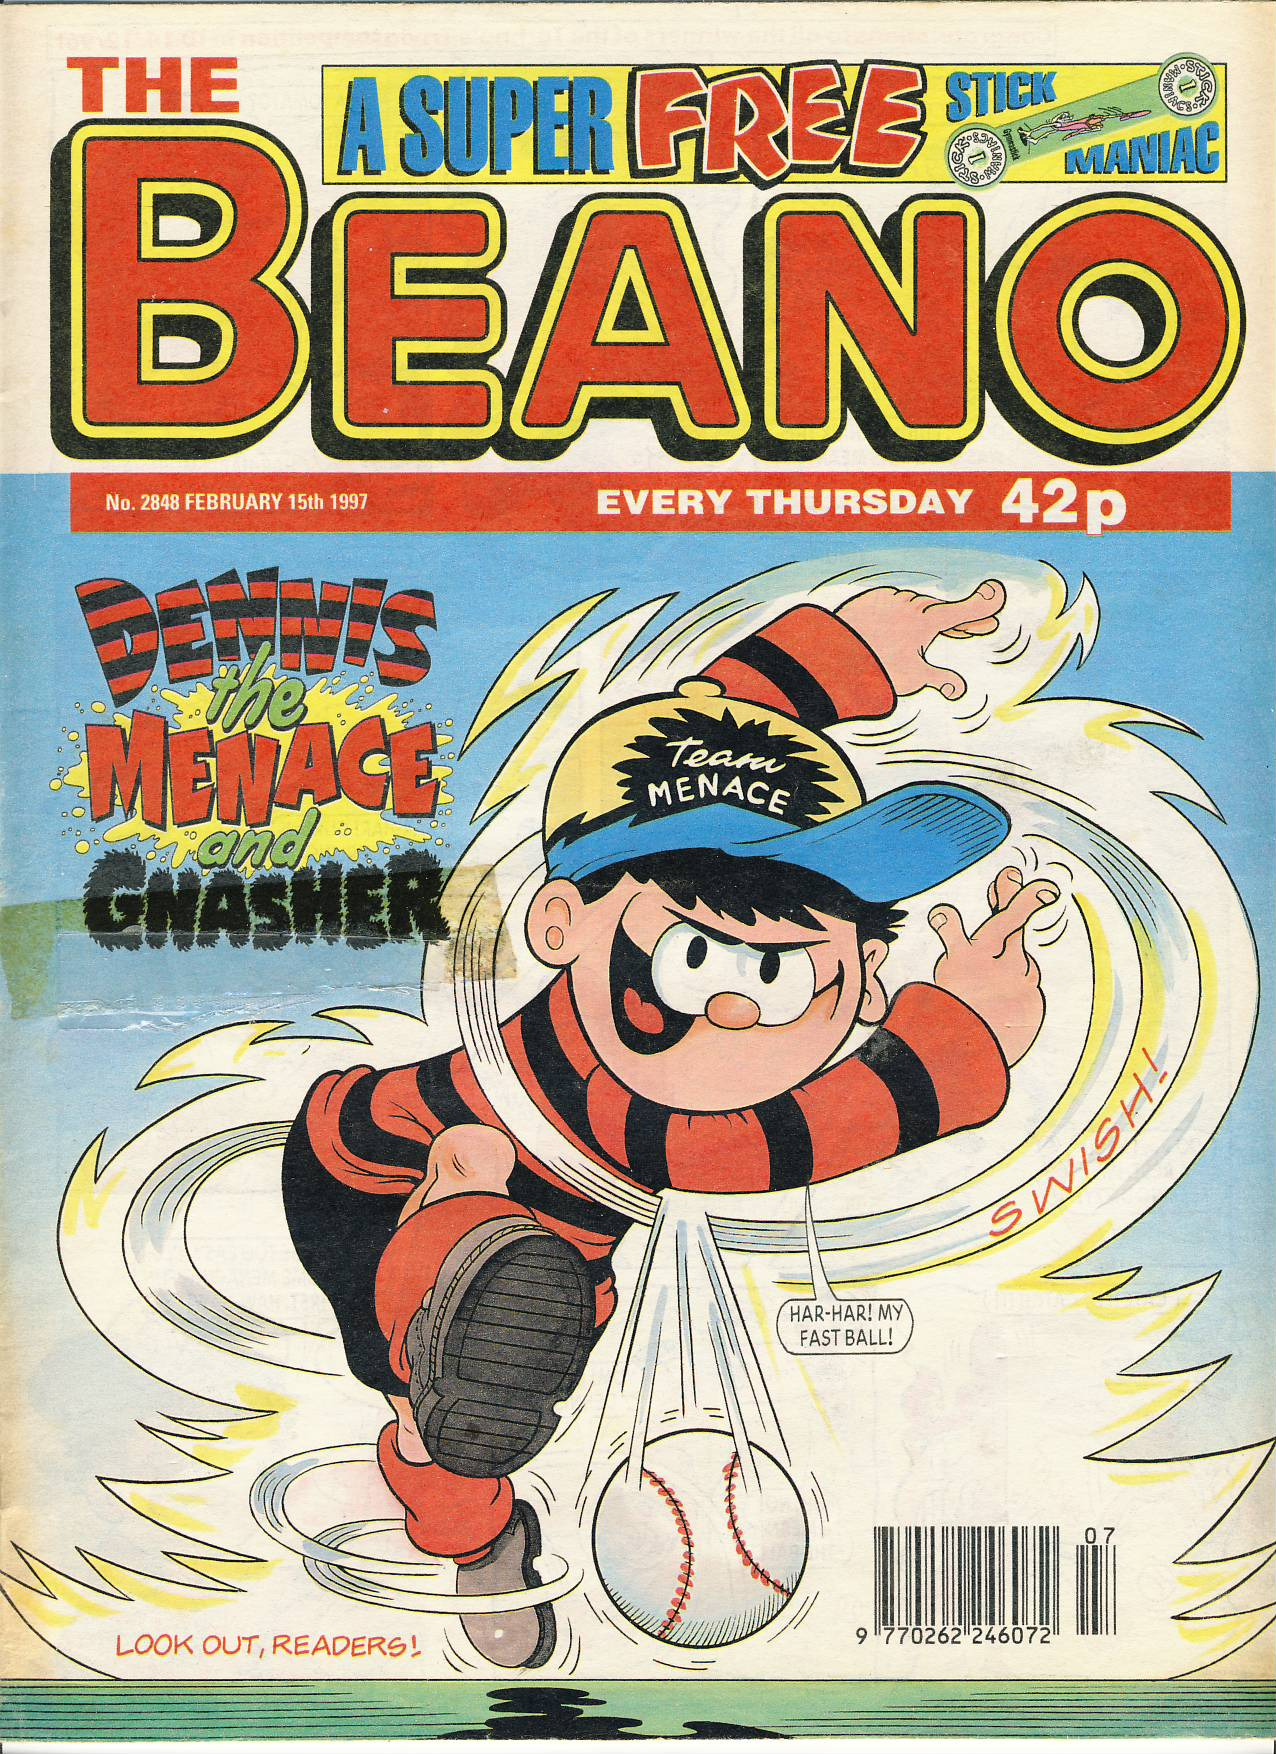 1997 February 15th BEANO vintage comic Good Gift Christmas Present Birthday Anniversary ref215 a pre-owned item in very good read condition.